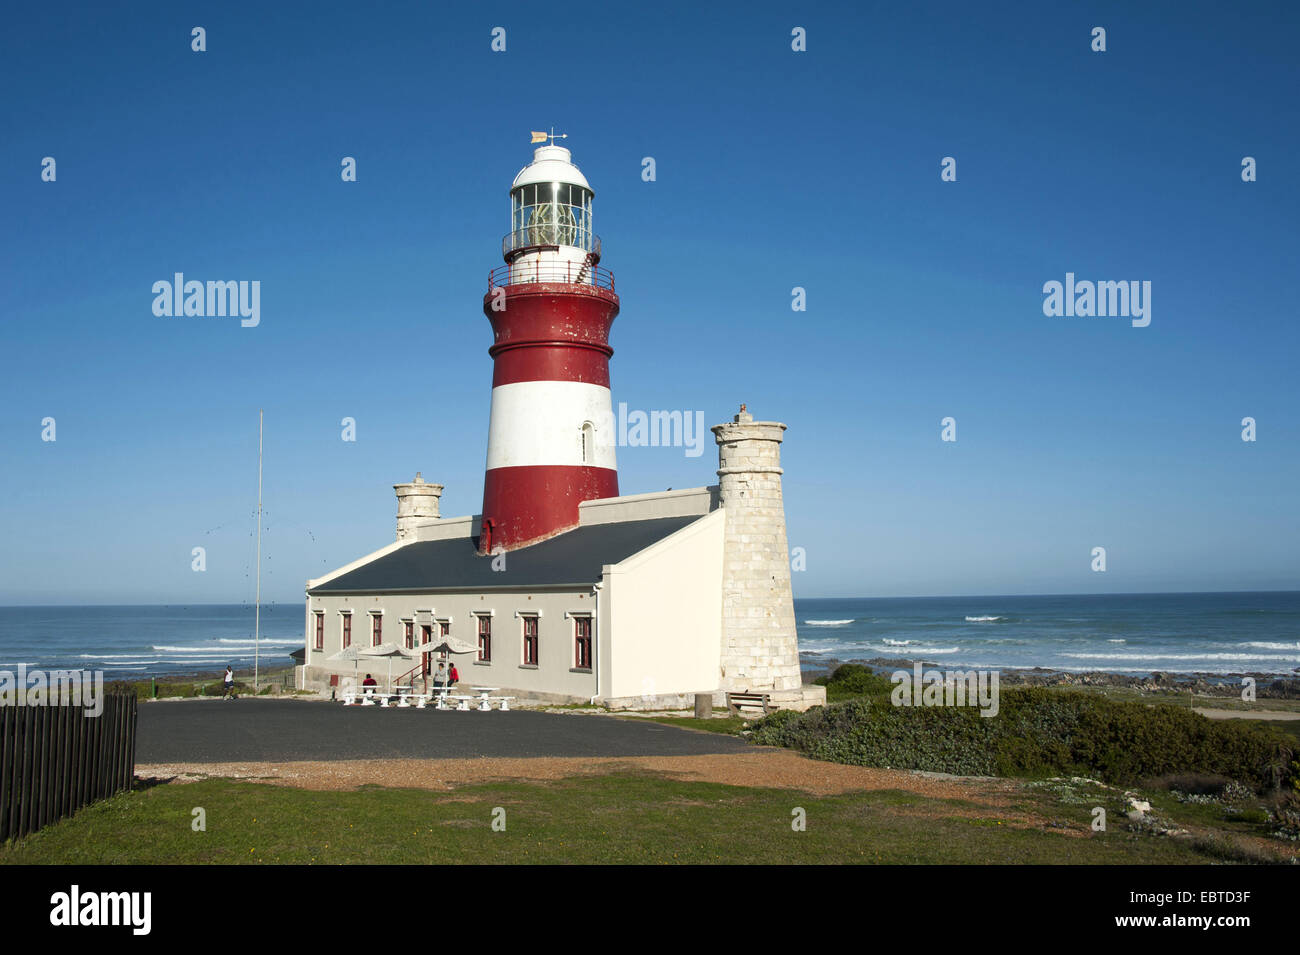 lighthouse at Cape Agulhas, the most southerly place in Africa which also marks the border between the Atlantic - Stock Image